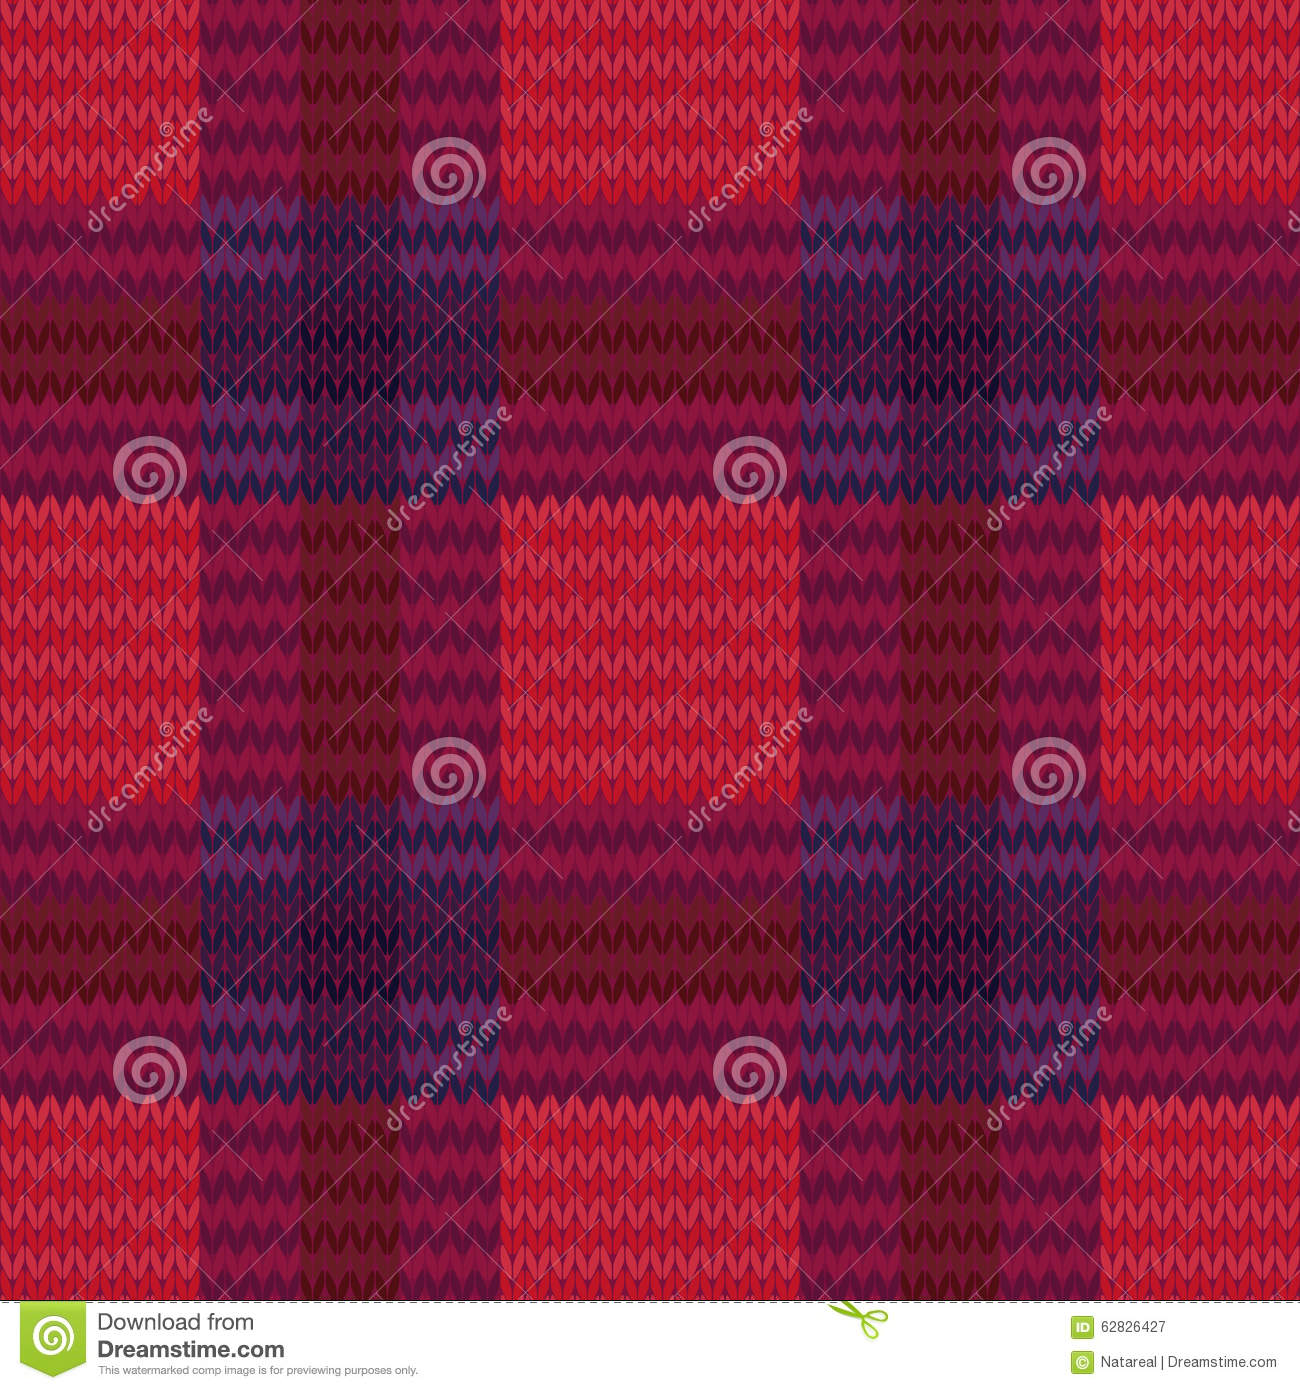 Checkered Knitting Pattern : Knitting Seamless Checkered Pattern Stock Vector - Image ...